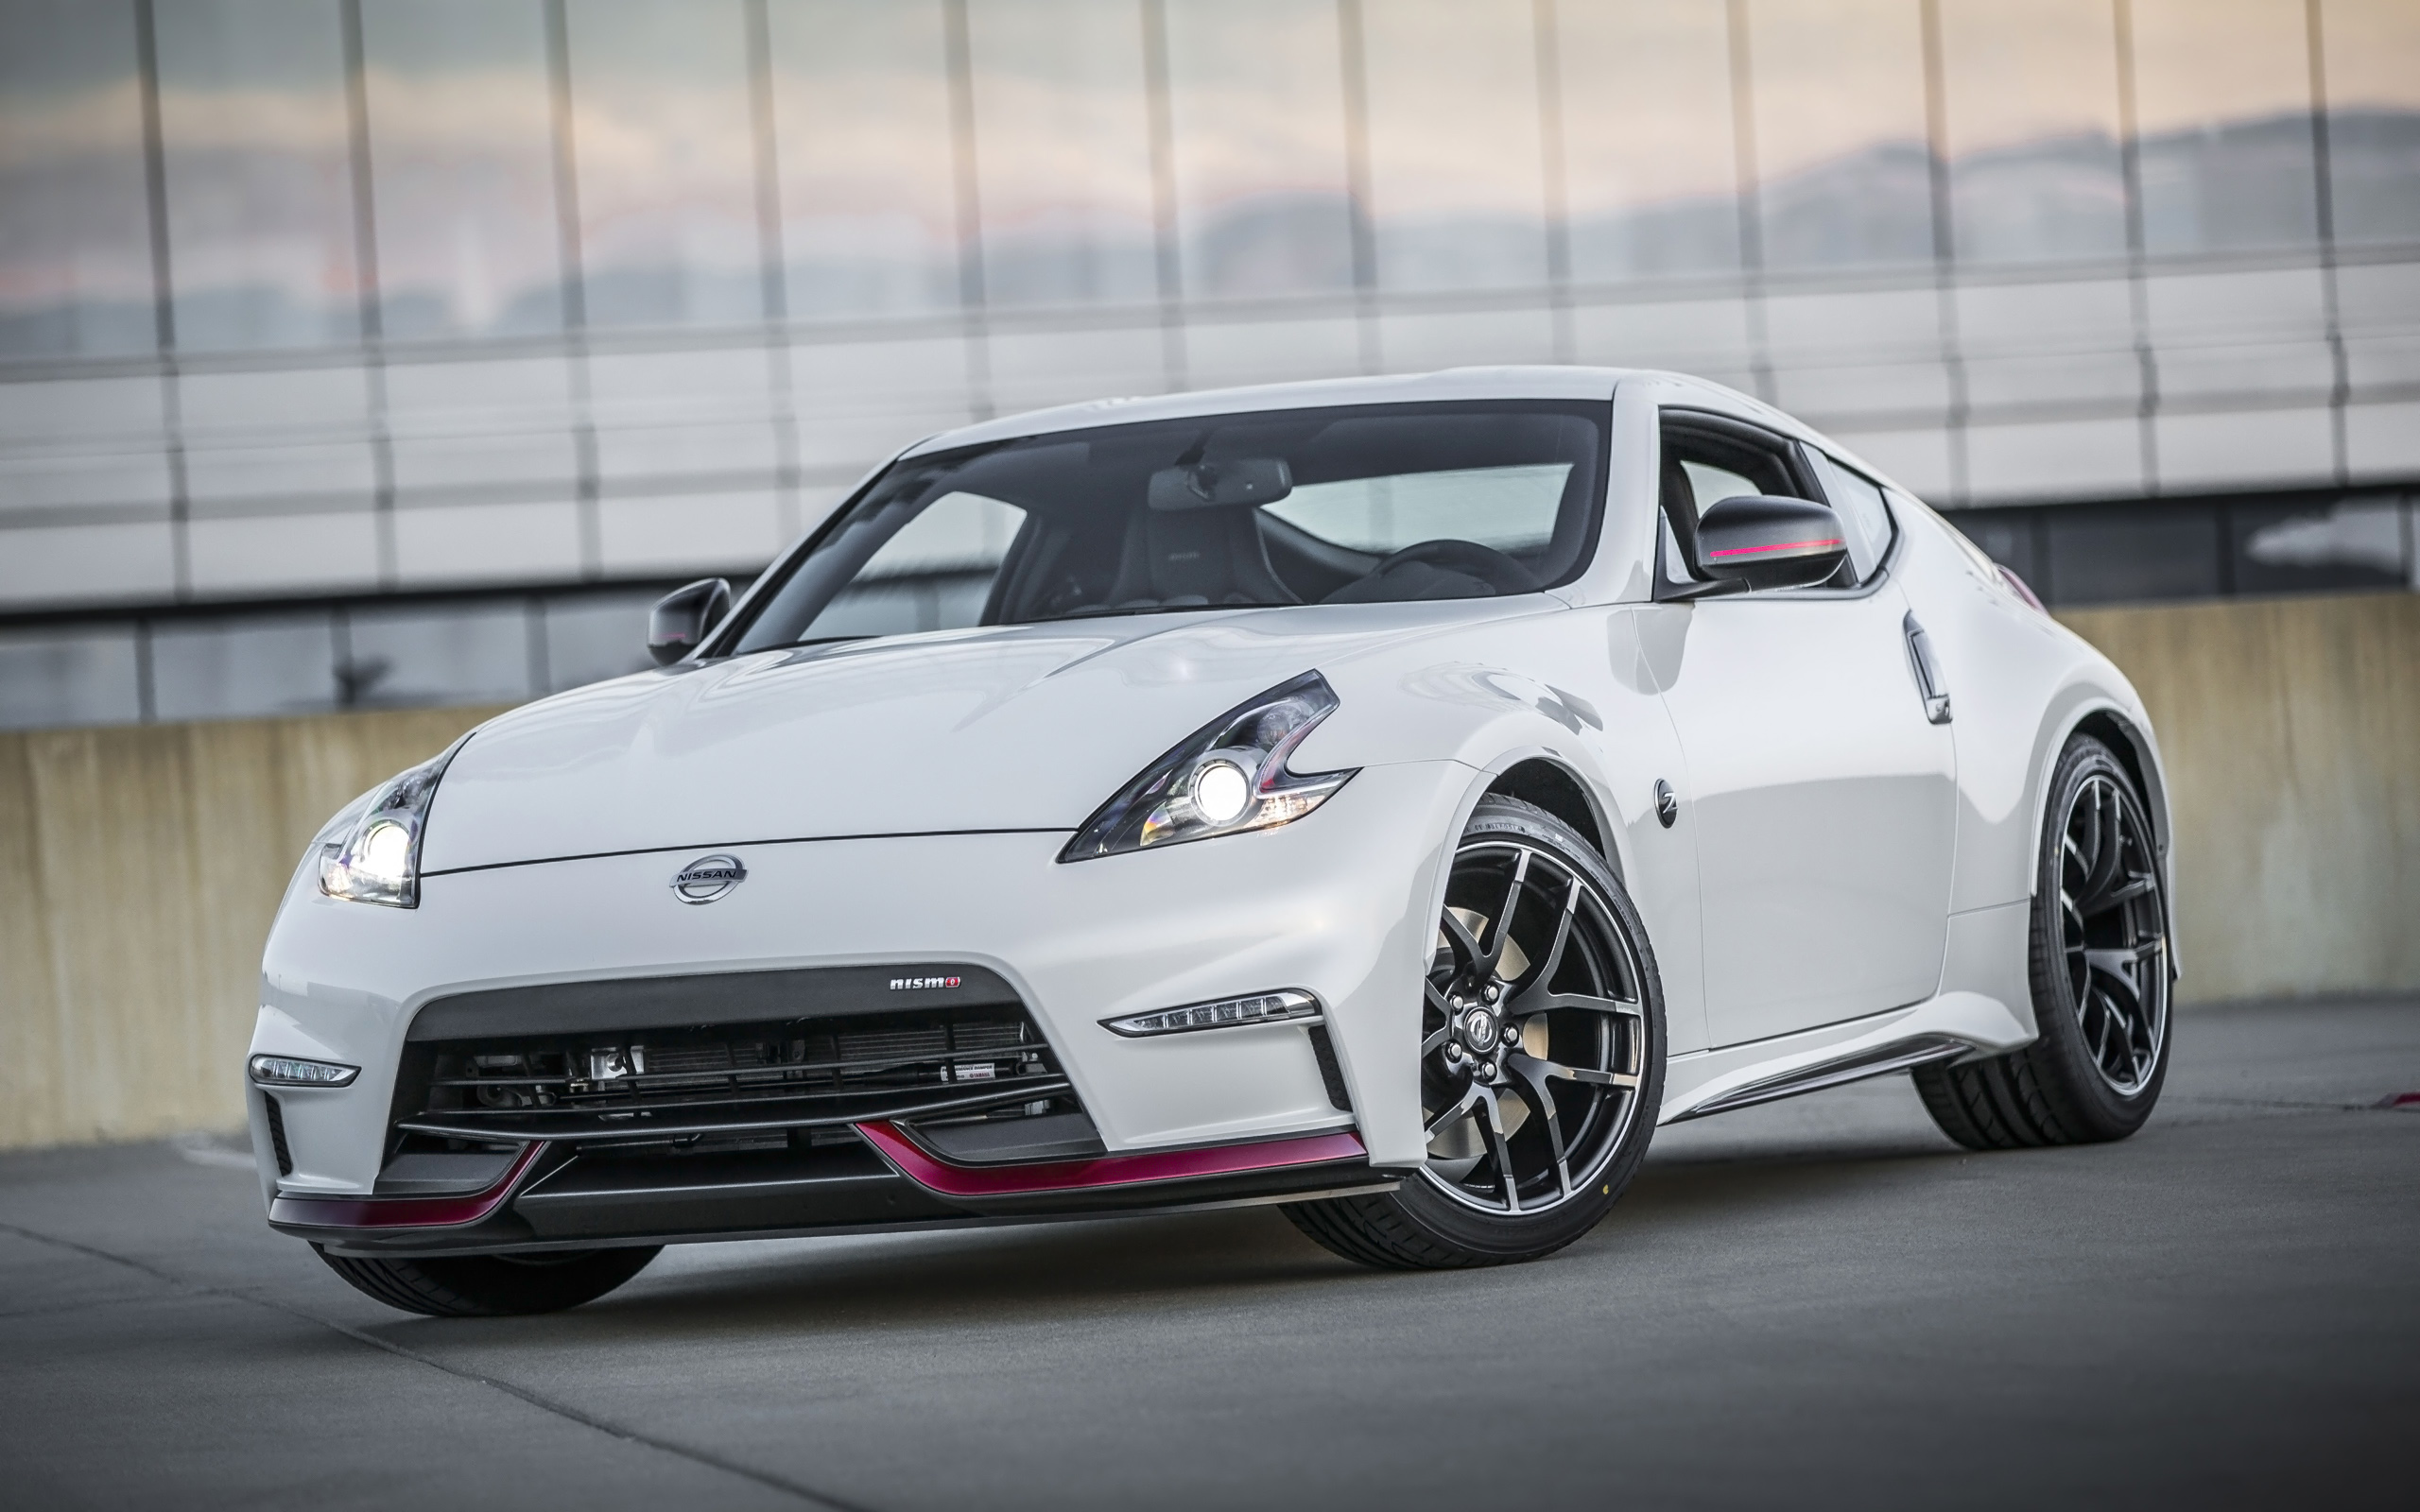 2015 Nissan 370Z NISMO Wallpaper HD Car Wallpapers 2560x1600